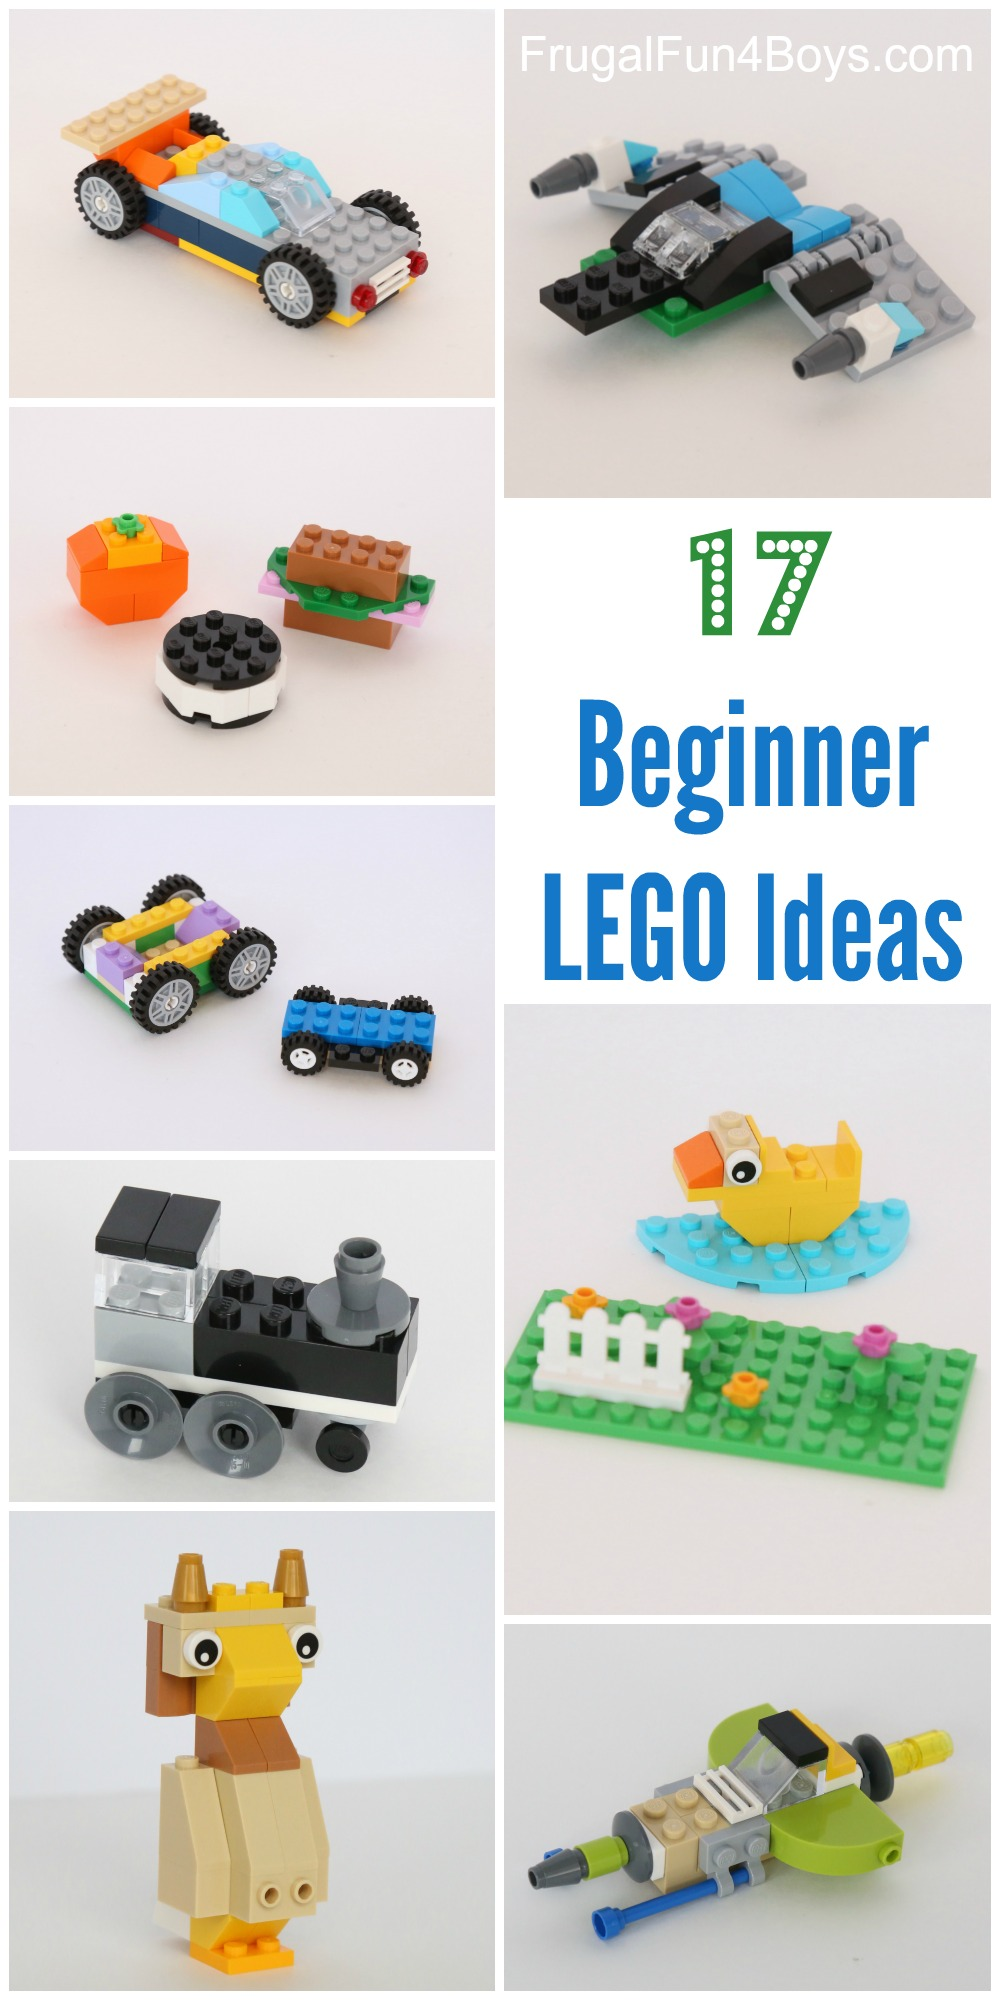 17 Beginner LEGO Ideas with LEGO Classic sets